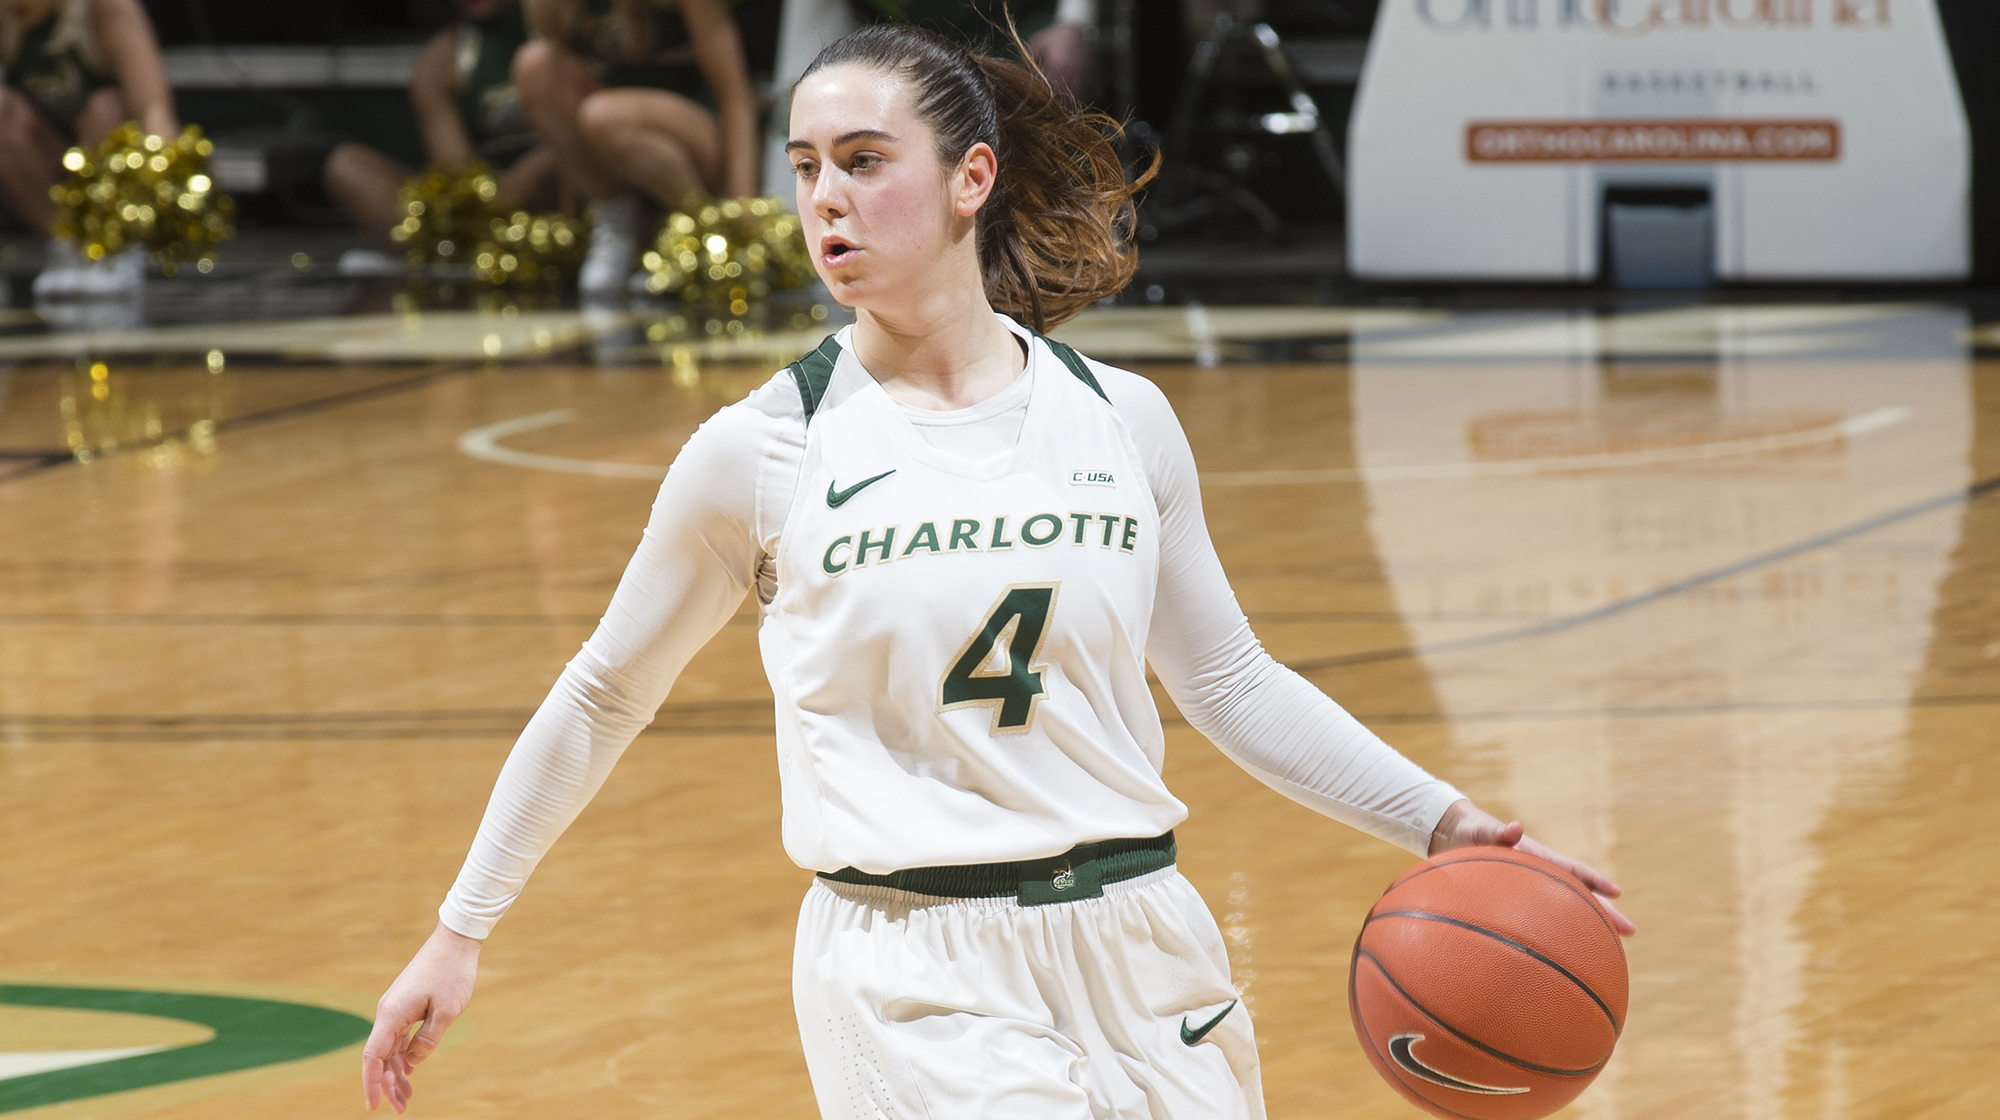 fdabb8eaf56 Laia Raventós - Women's Basketball - Charlotte Athletics